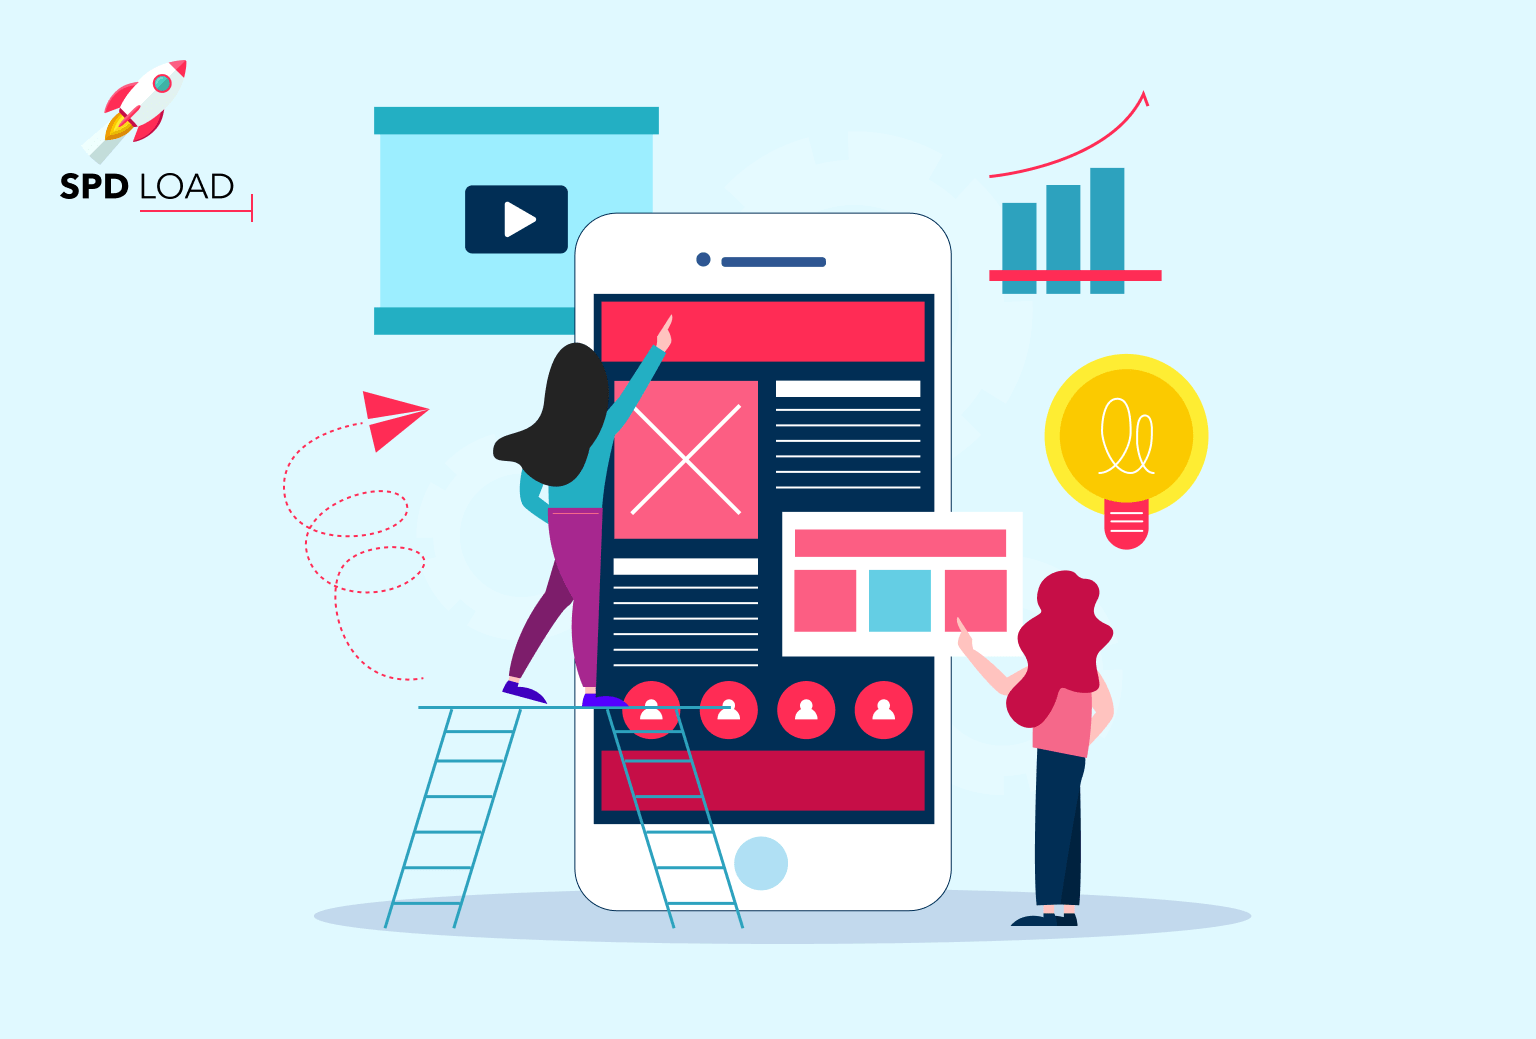 SpdLoad prepared an in-depth guide on app design cost. it covers the factors, executors and details of what defines the cost of design an app.